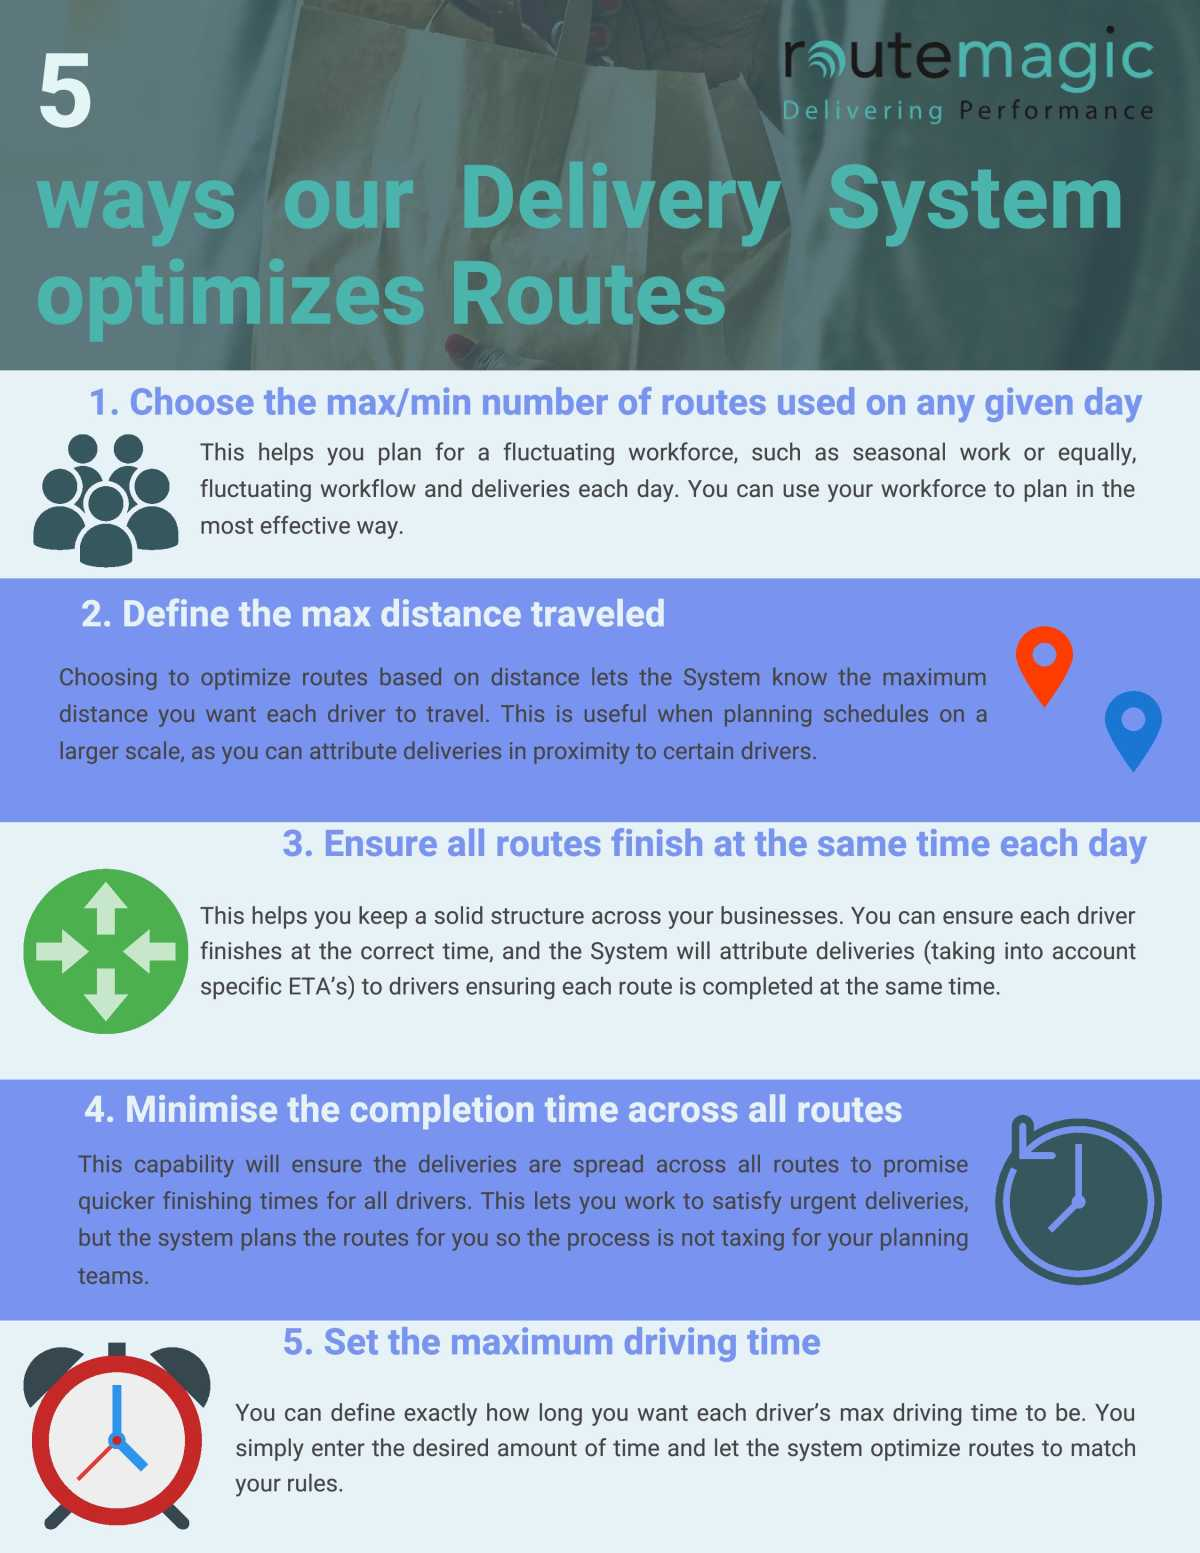 5 ways ways our Delivery System optimizes Routes-page-001